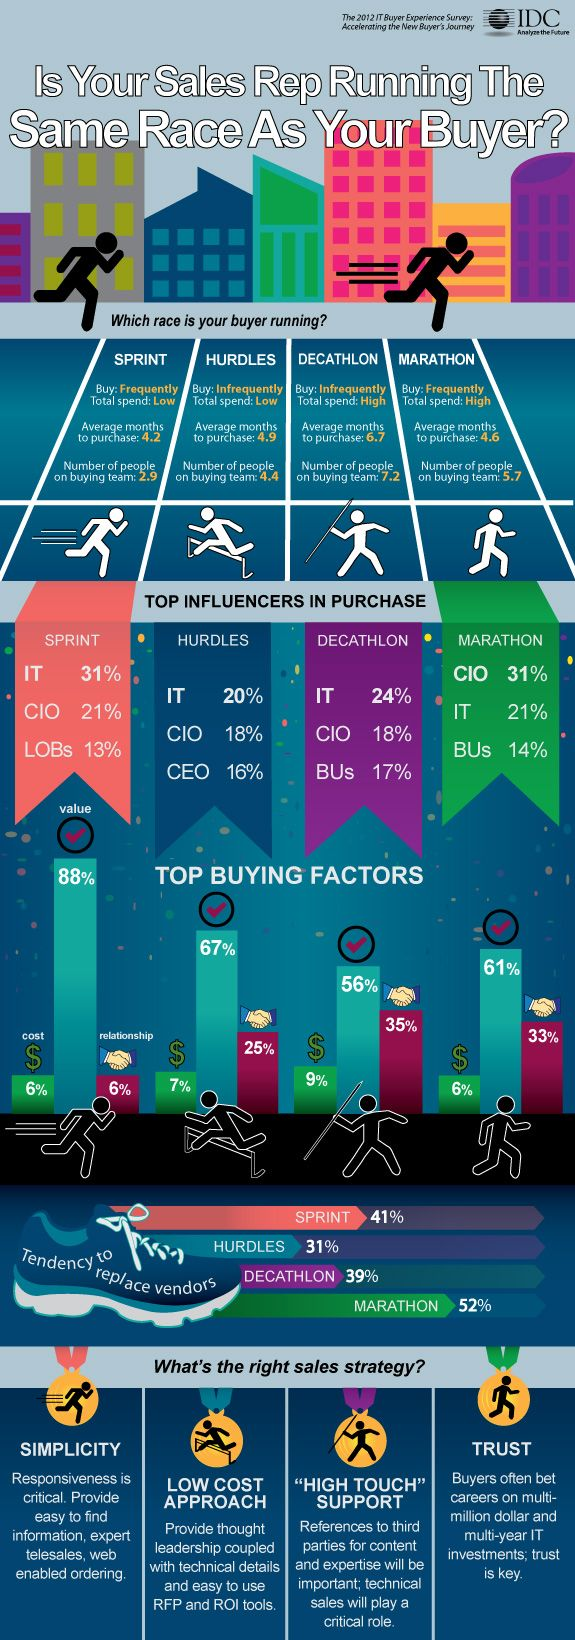 best images about wall street s rep s this infographic based on idc s 2012 it buyer experience study idc helps s reps the best s strategies for their buyers